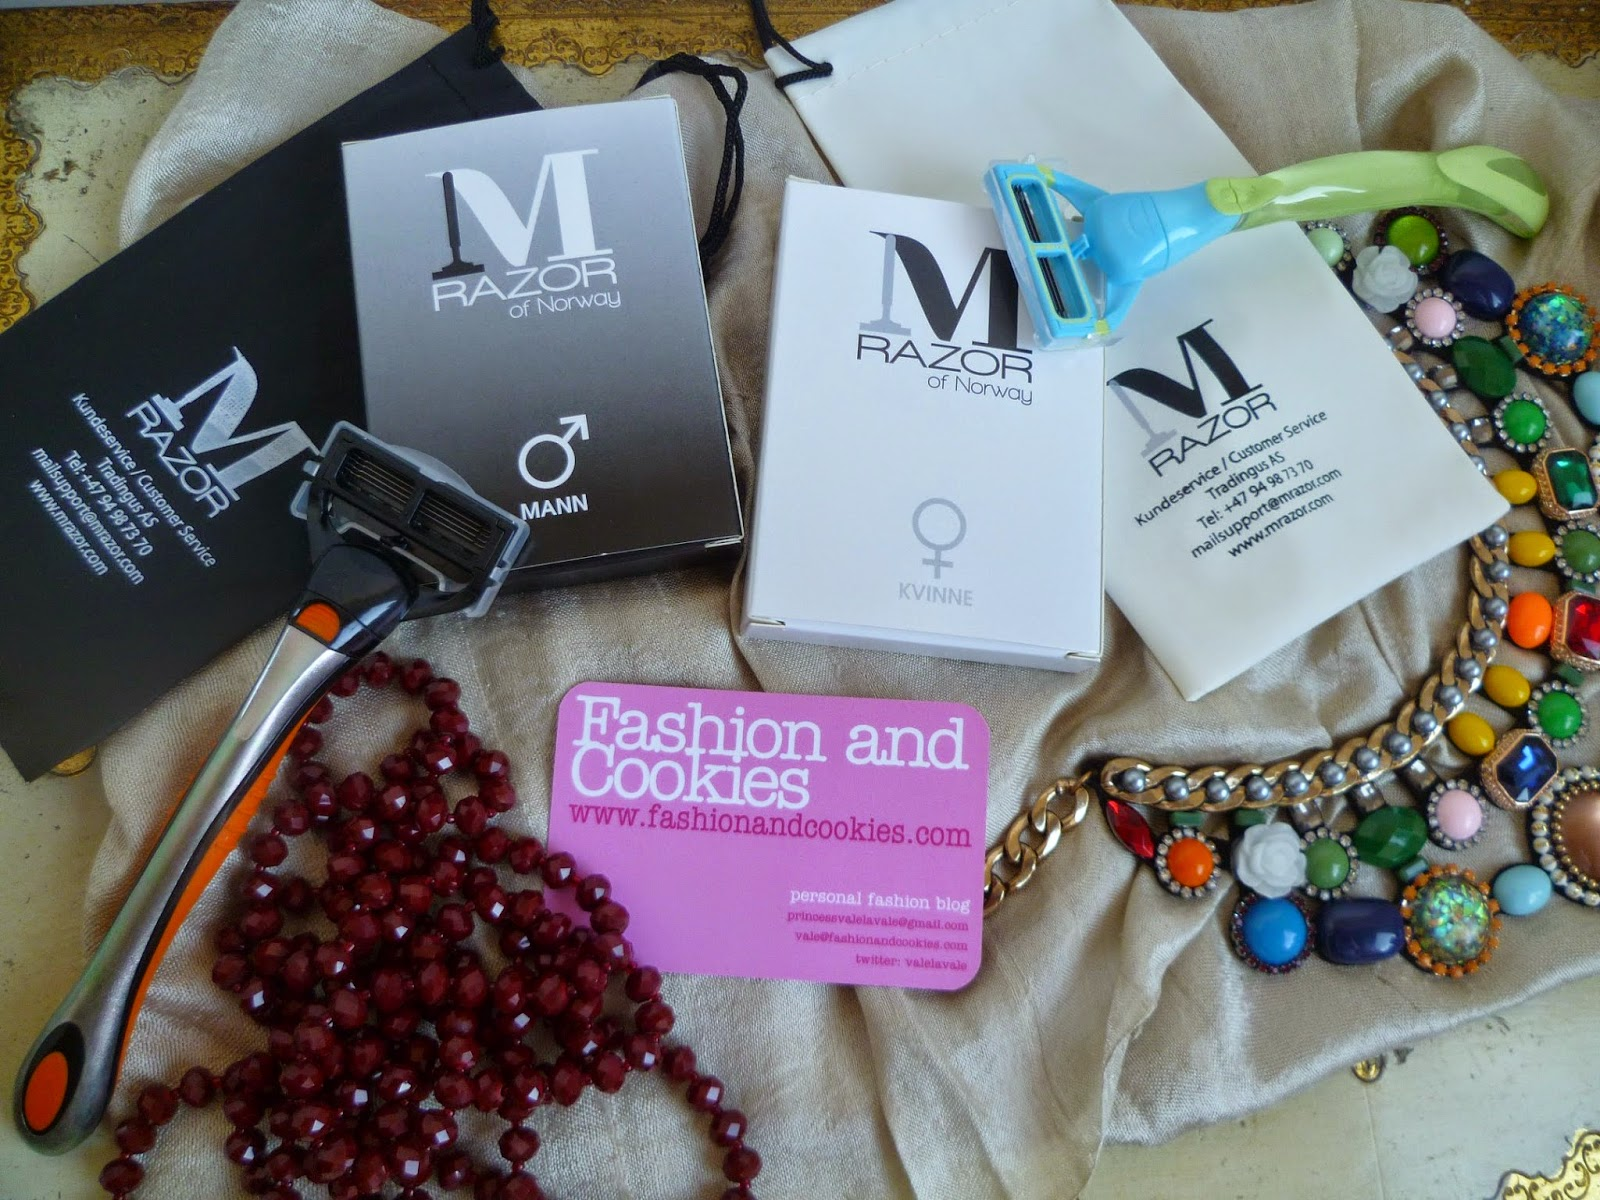 Mrazor of Norway review, Fashion and Cookies, fashion blogger